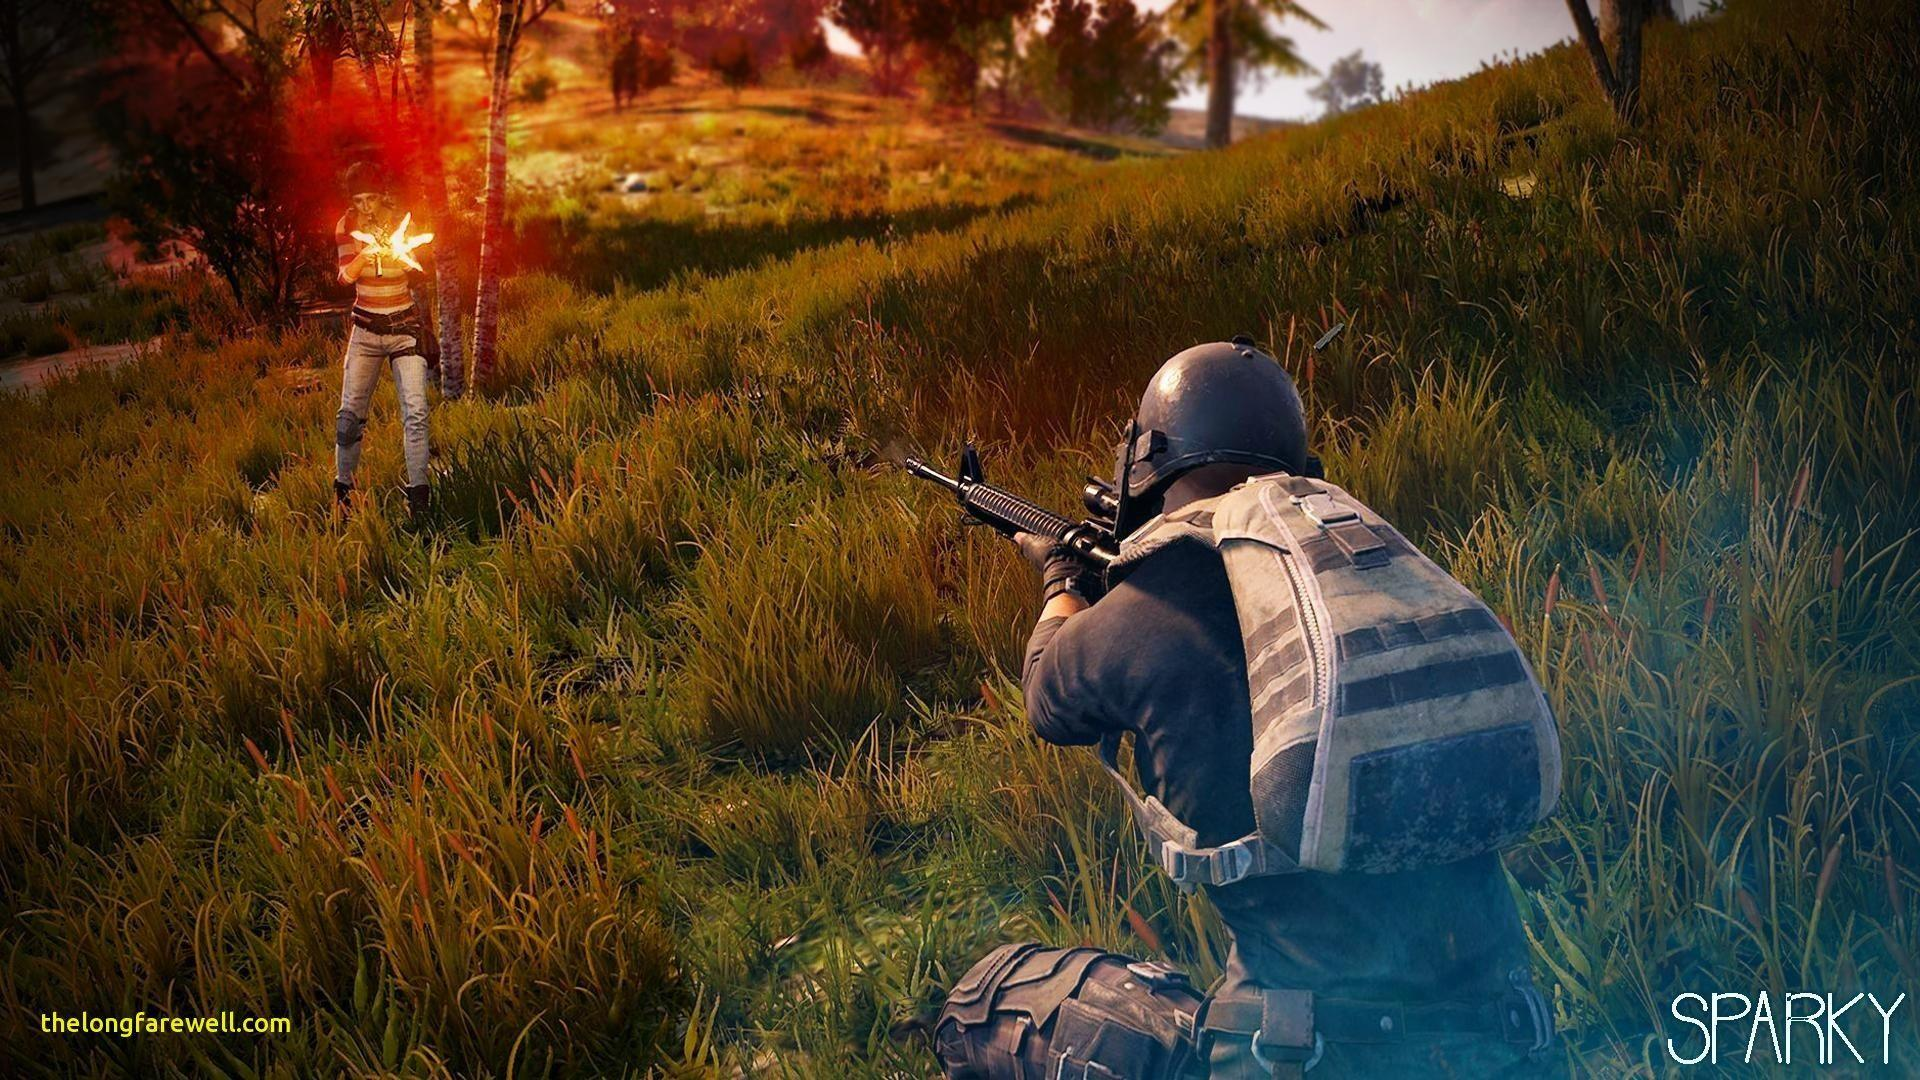 Wallpapers Pubg Full Hd Em Papel De Parede 1080p Hd: PUBG 4K Wallpapers